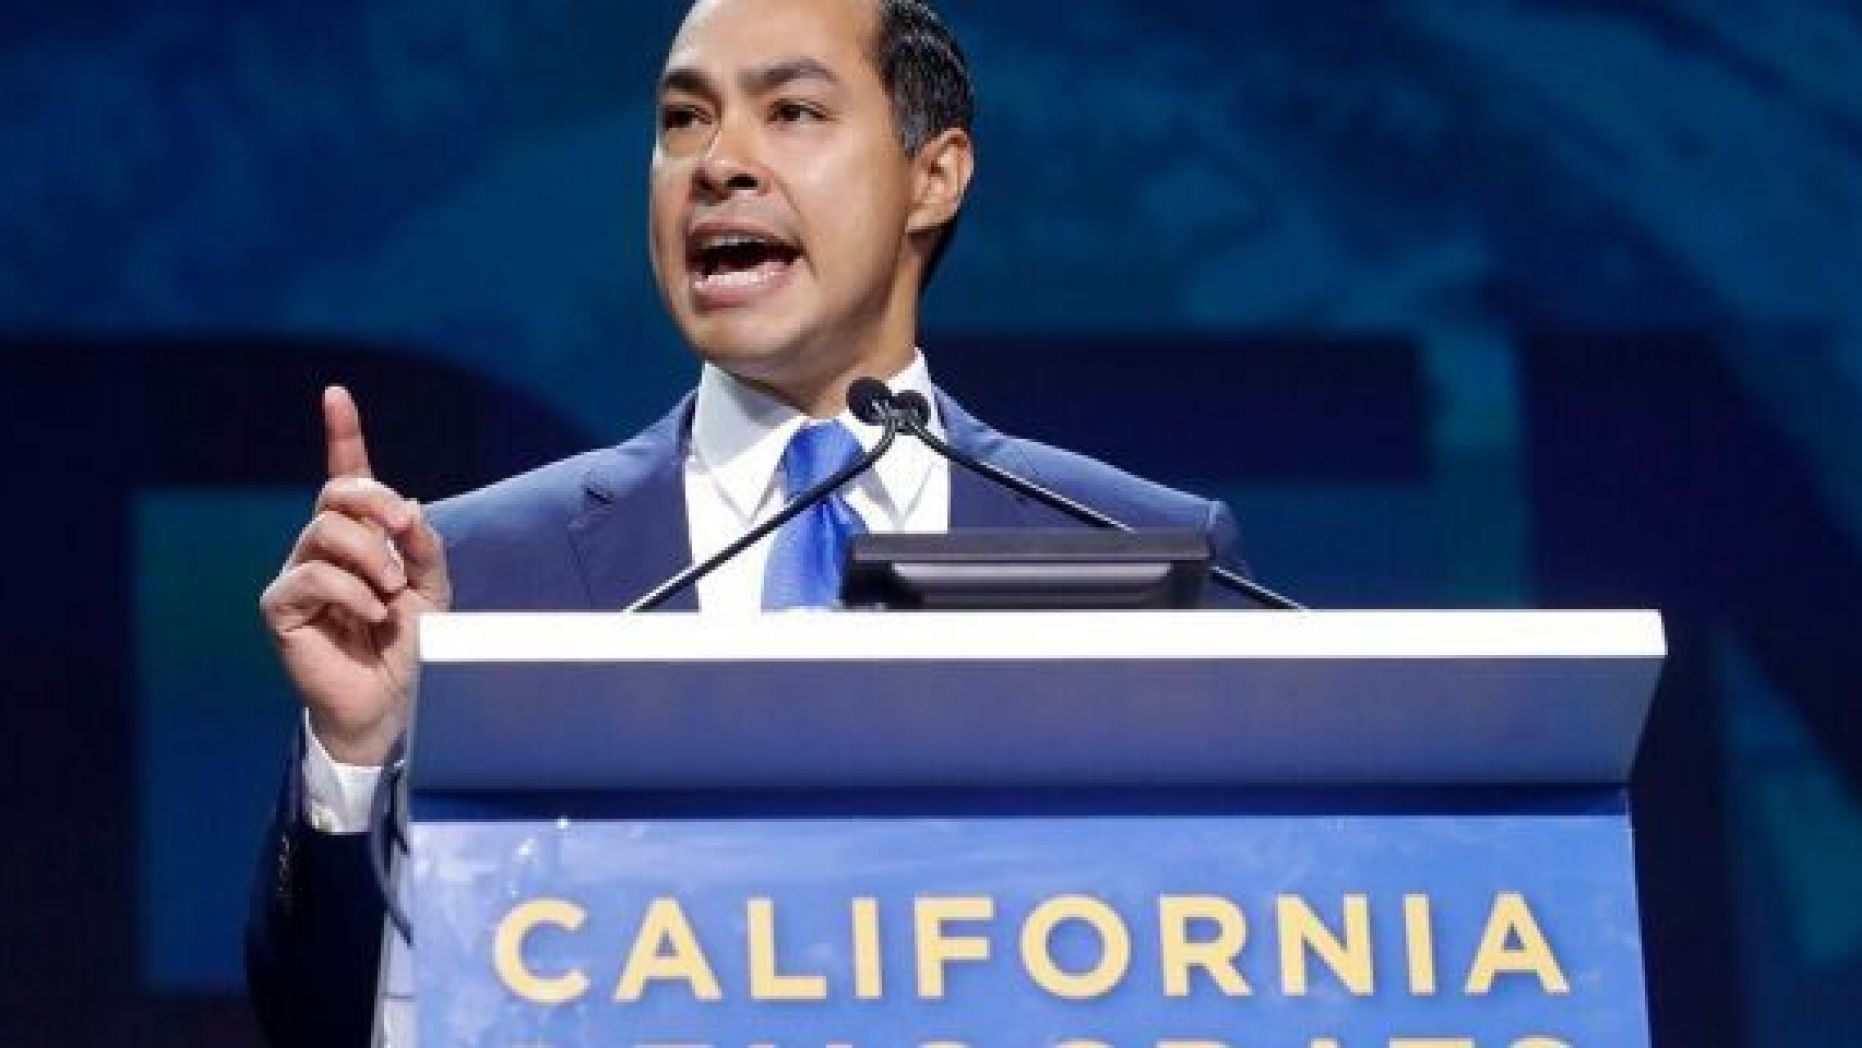 Democratic presidential candidate Julian Castro speaks during the 2019 California Democratic Party State Organizing Convention in San Francisco, Sunday, June 2, 2019. (AP Photo/Jeff Chiu)